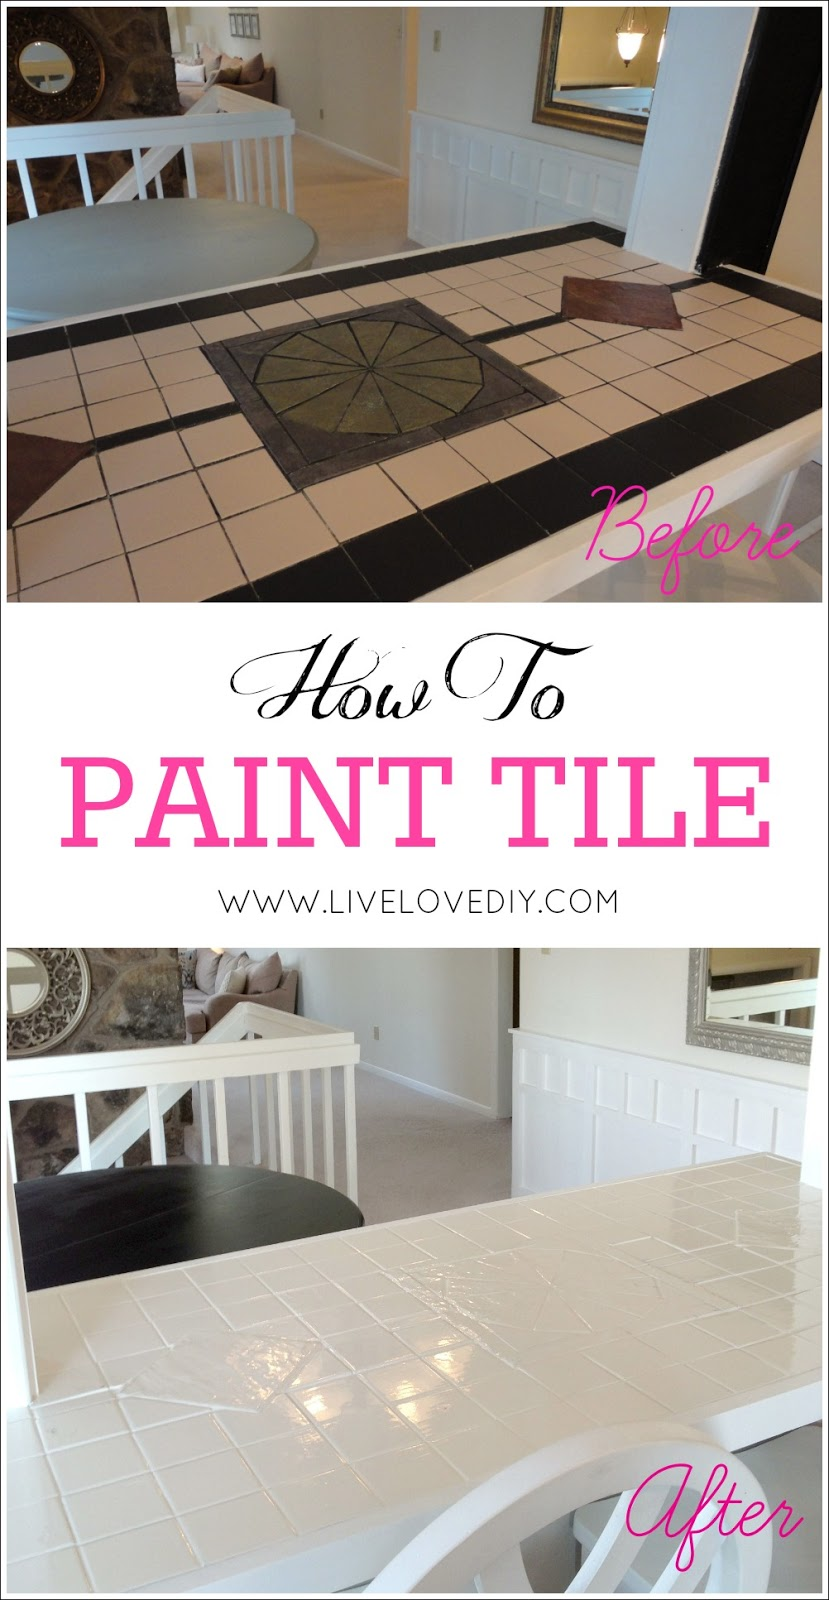 Livelovediy how to paint tile countertops how to paint tile countertops this is so great for outdated kitchens and bathrooms dailygadgetfo Choice Image